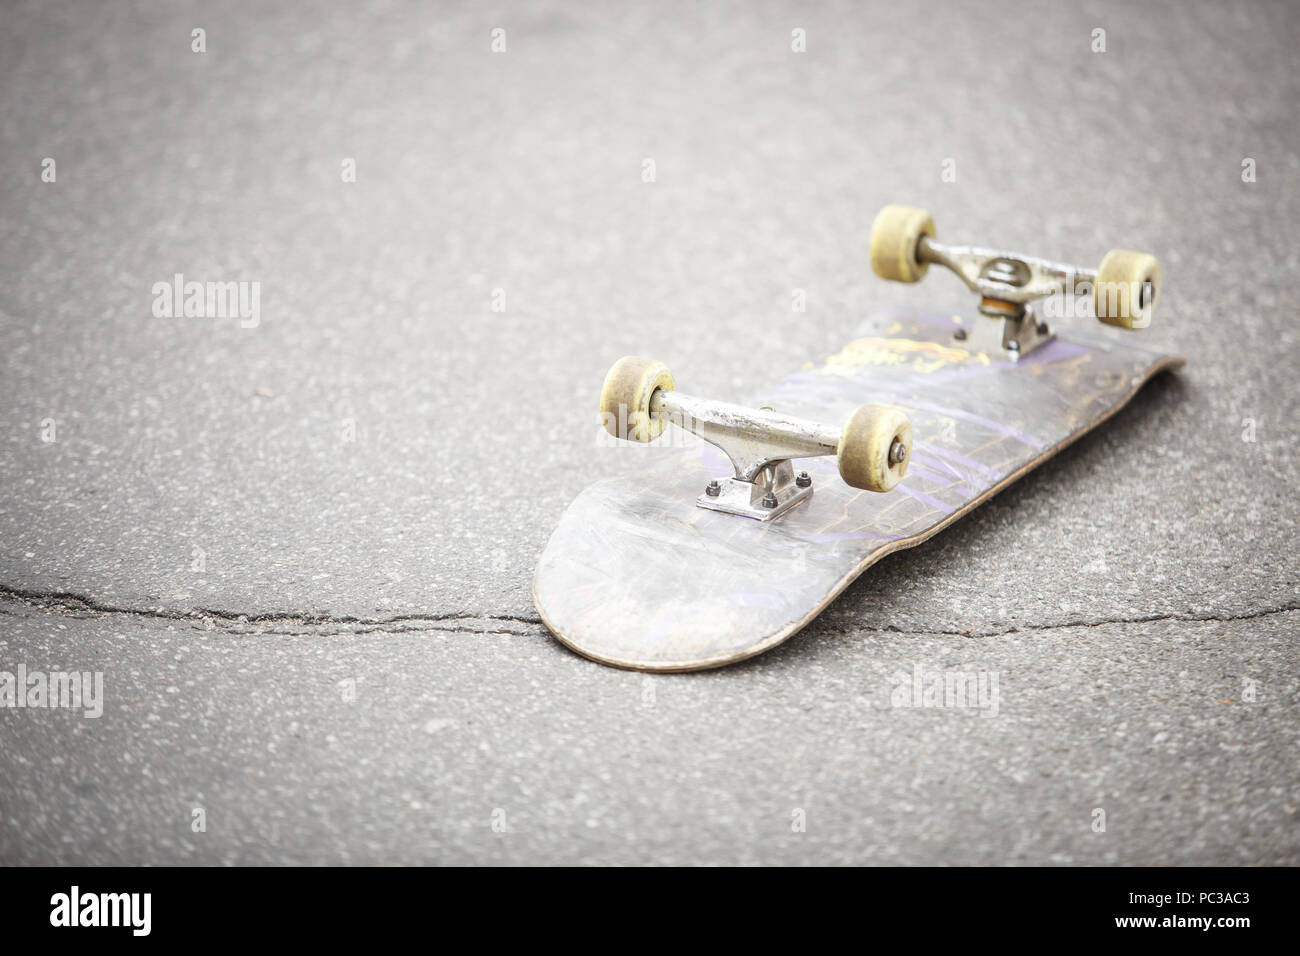 ecaaaef899 Old used skate board deck with signs of wear Stock Photo: 213974323 ...